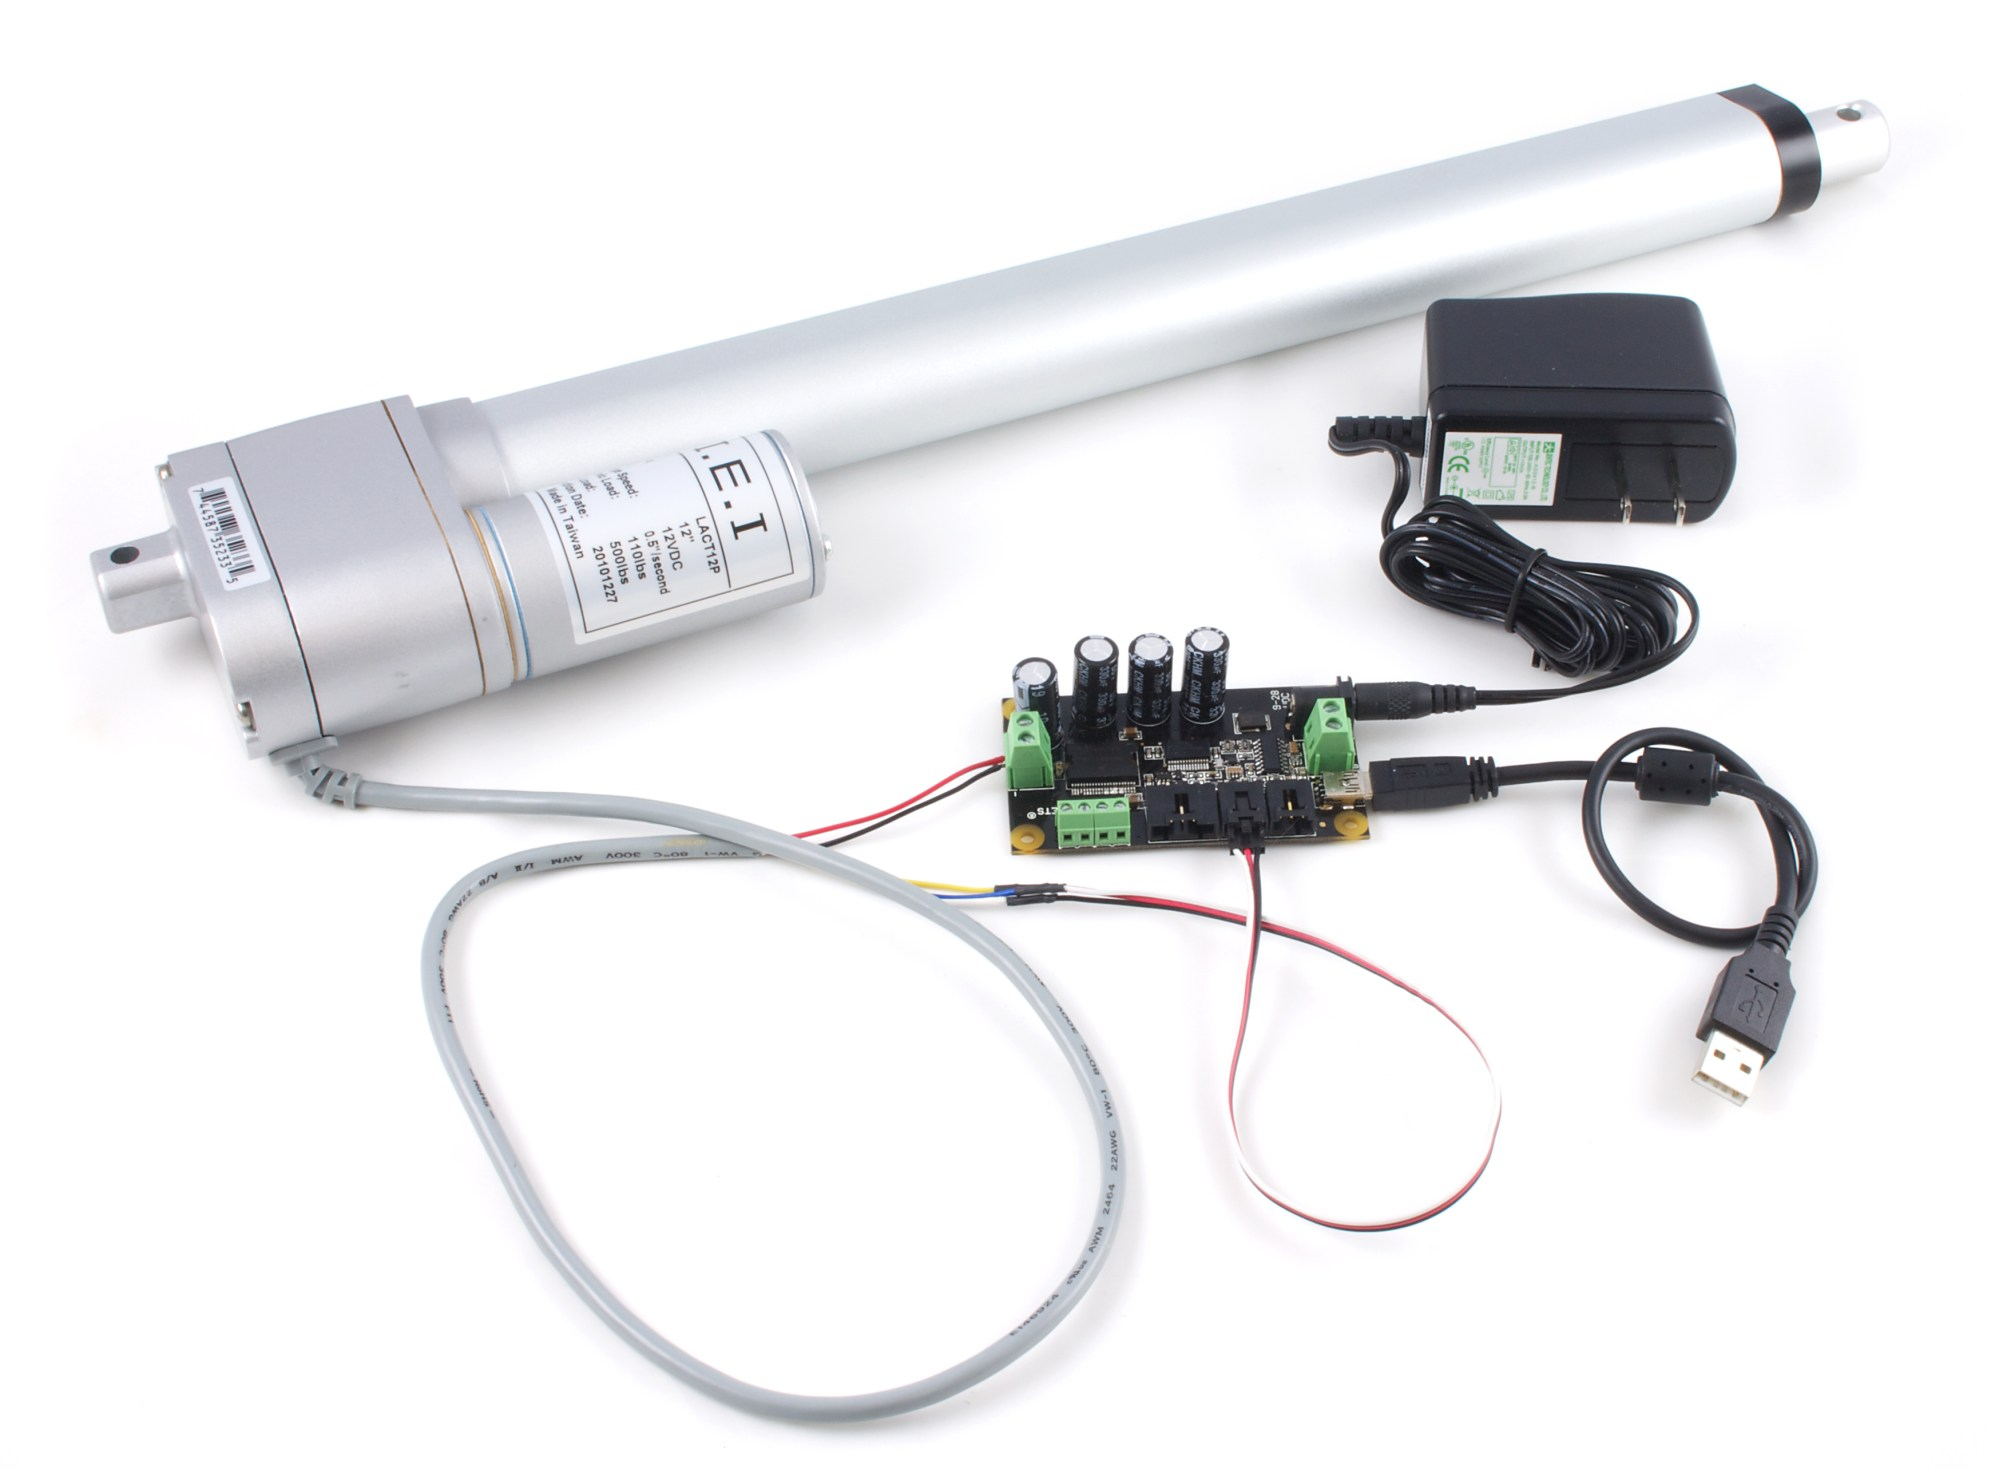 hight resolution of a linear actuator is a motor that has been geared to extend and contract an arm rather than rotate a shaft many applications that use linear actuators